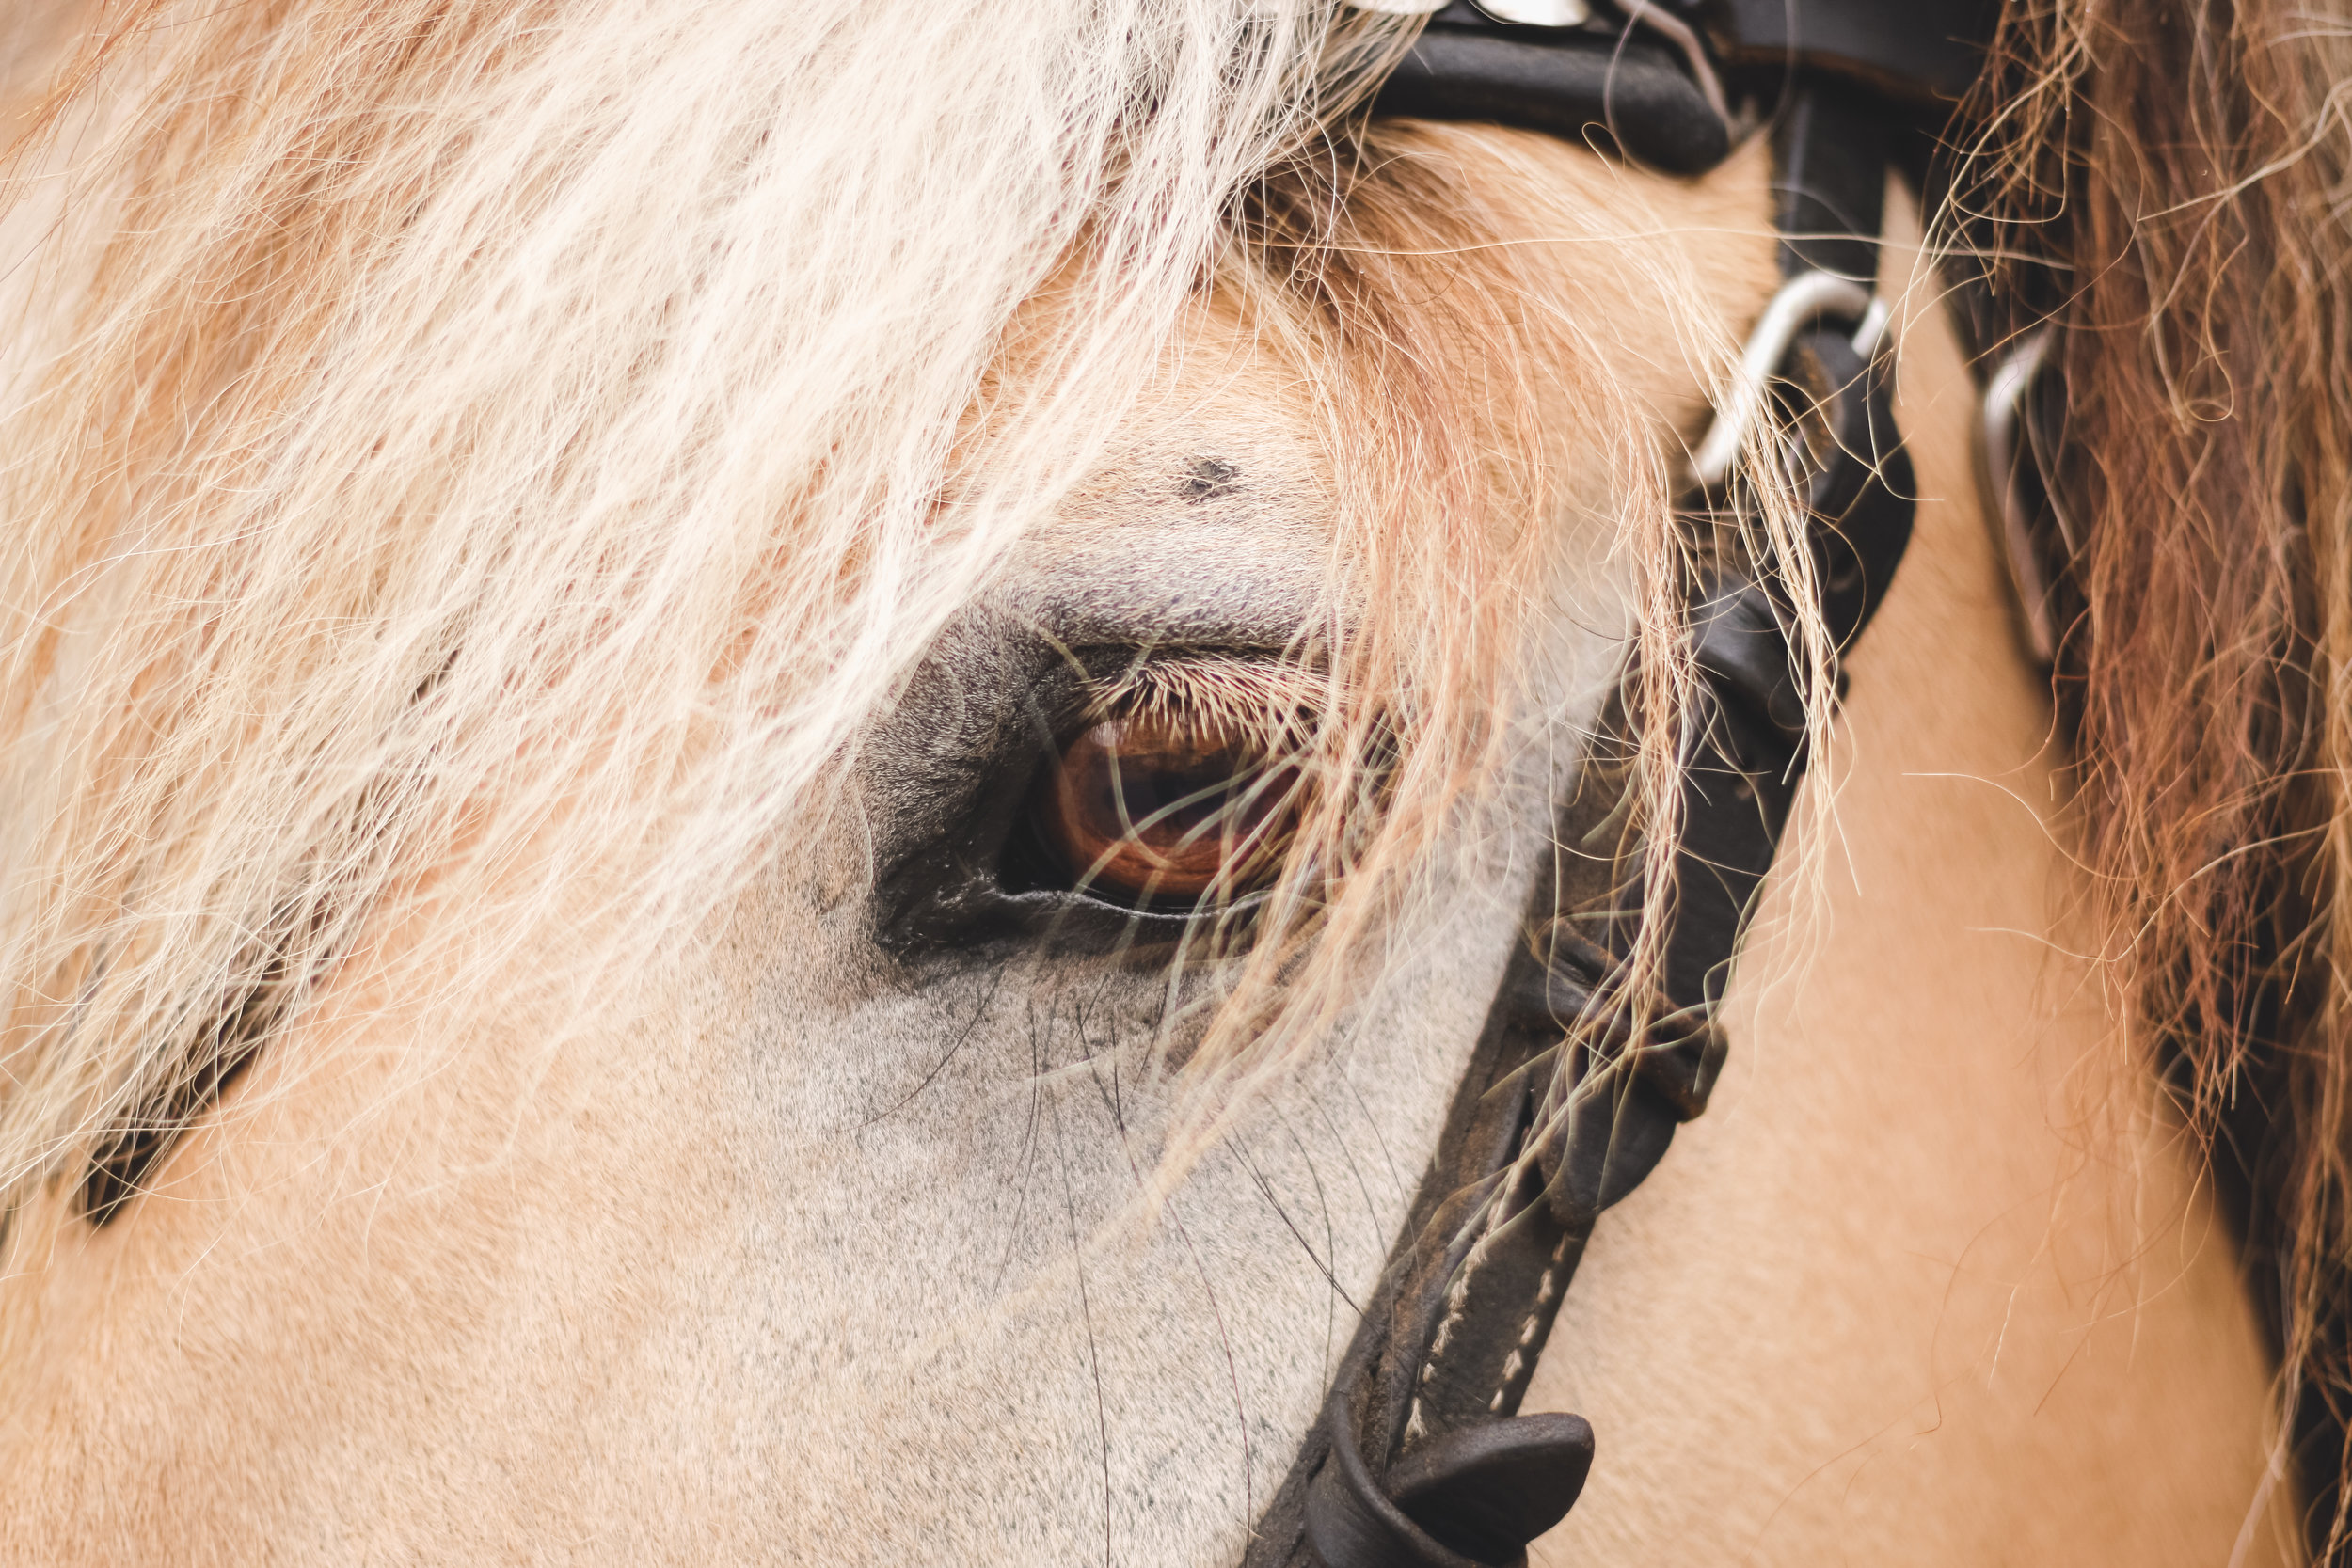 close up of a horse's eye with bridle